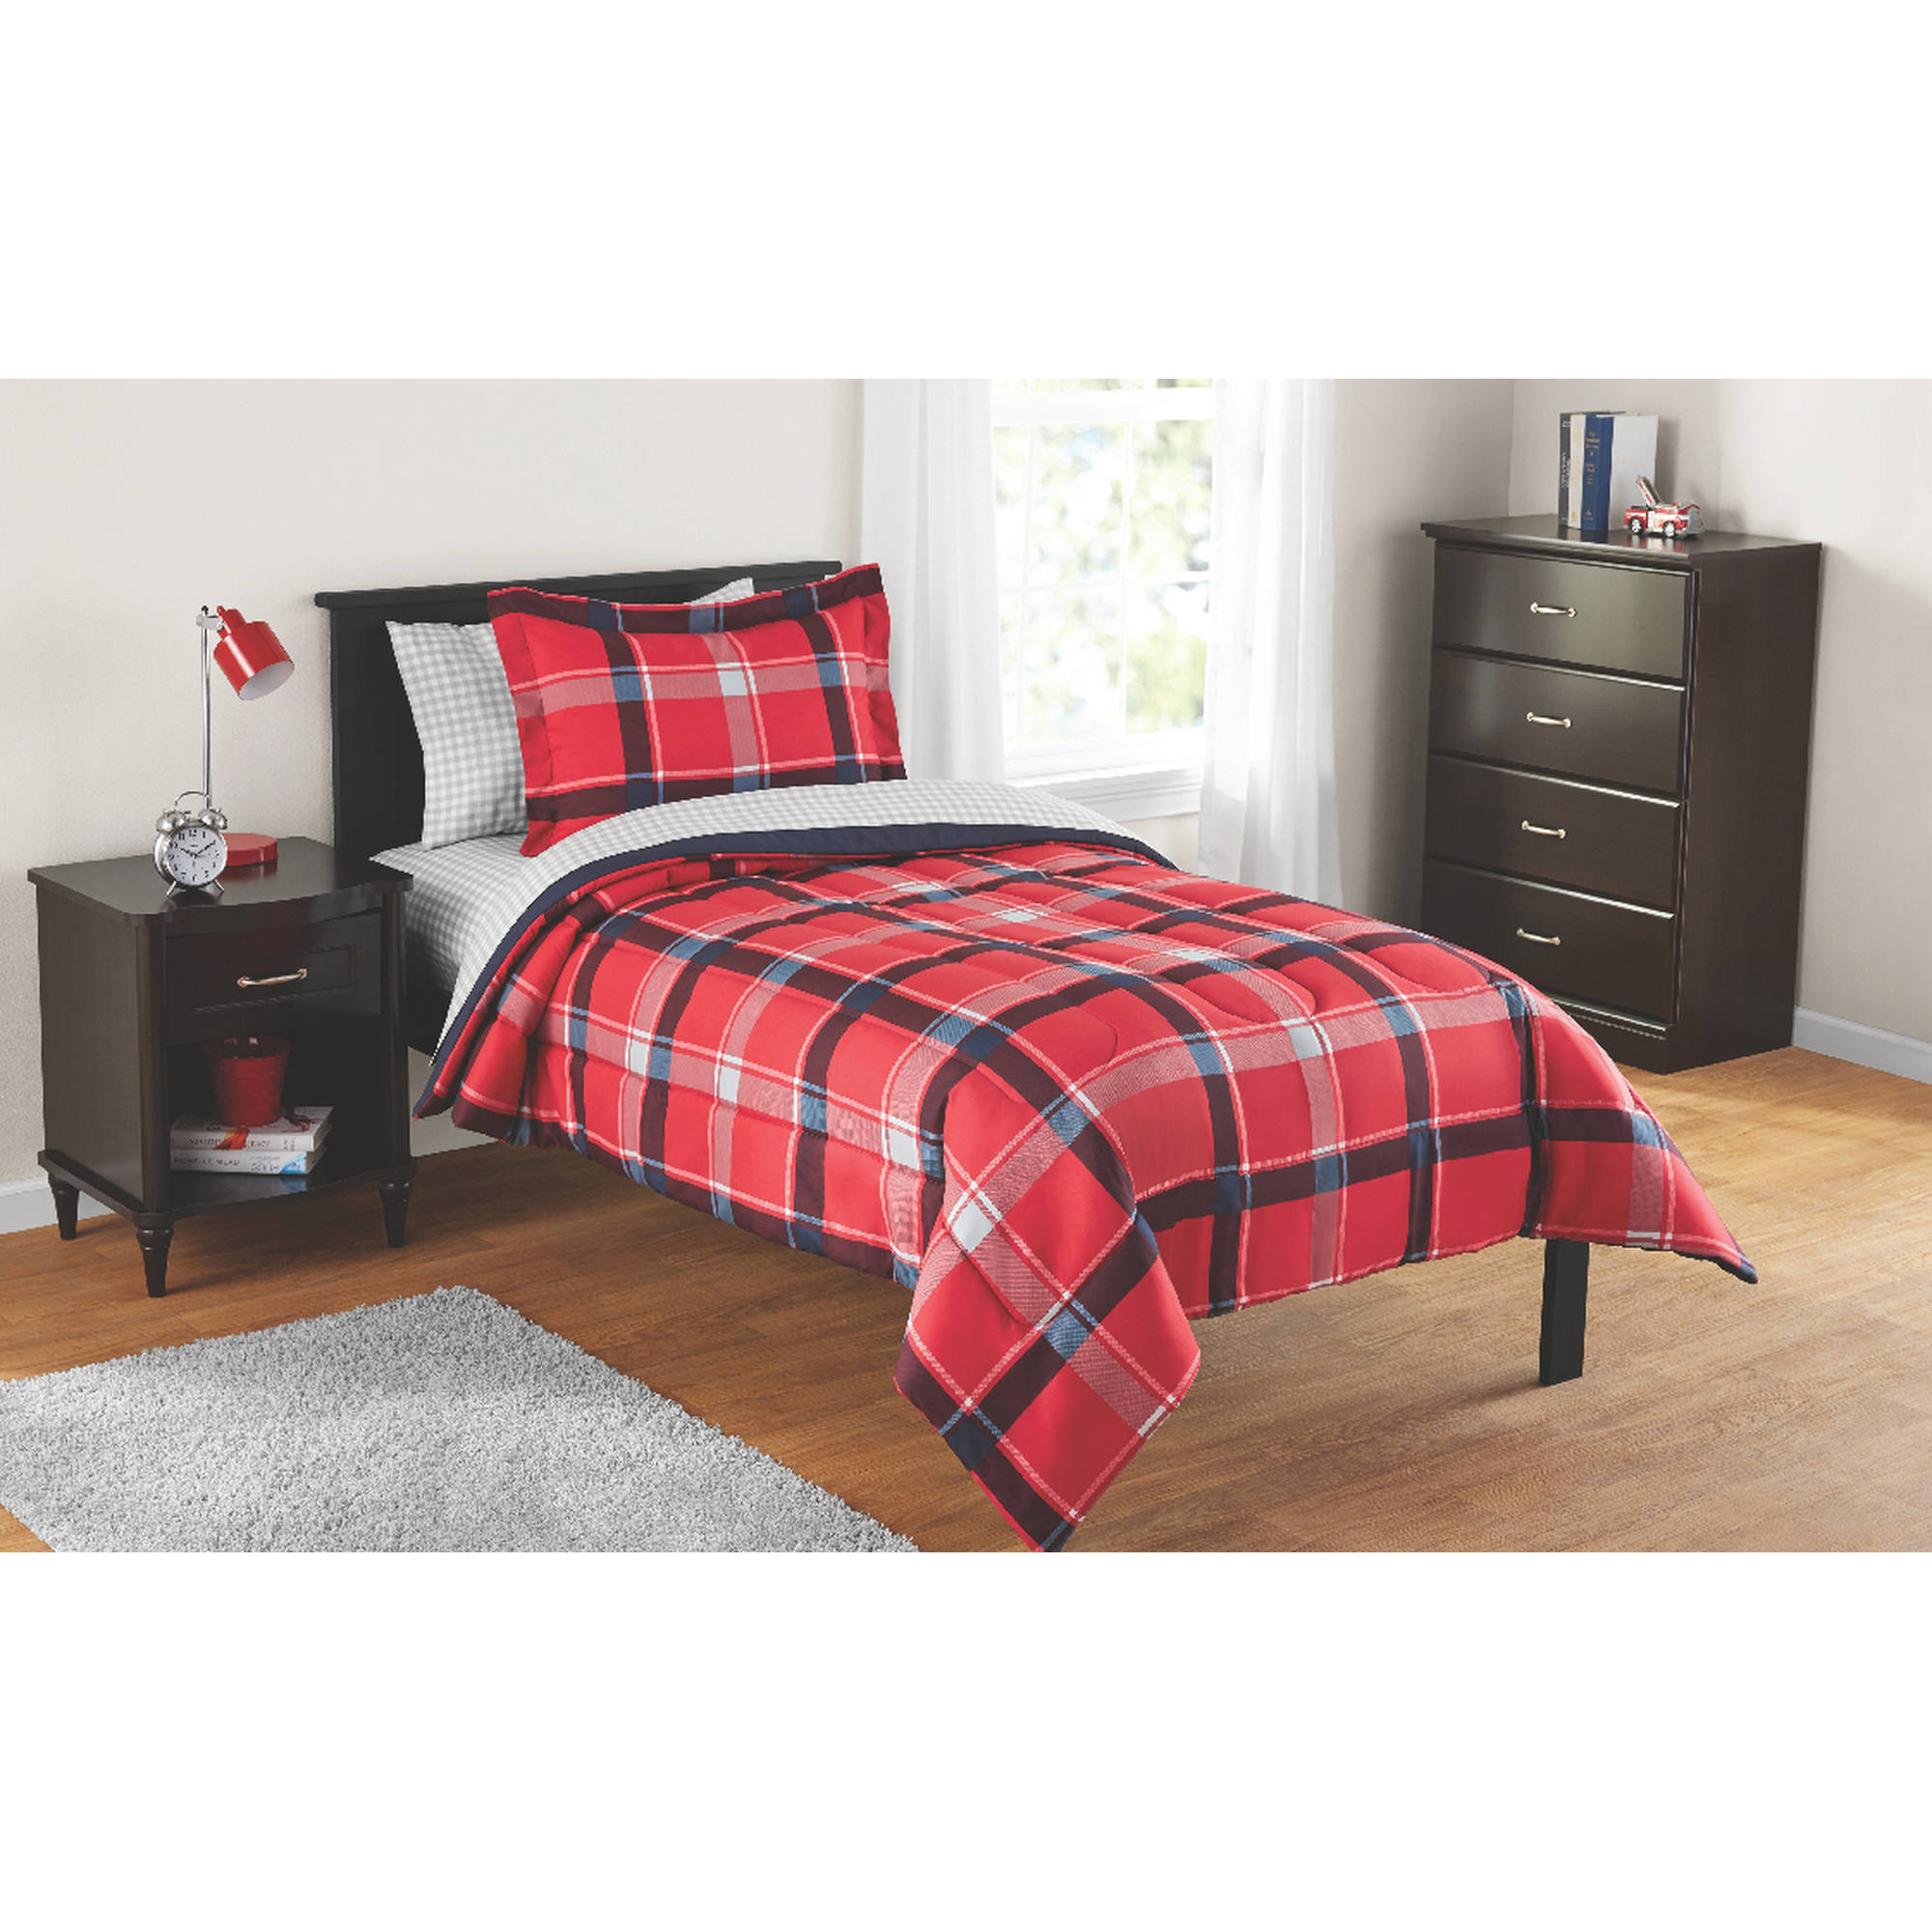 Mainstays Kids Red Plaid Bed In A Bag Complete Bedding Set 7 Pc